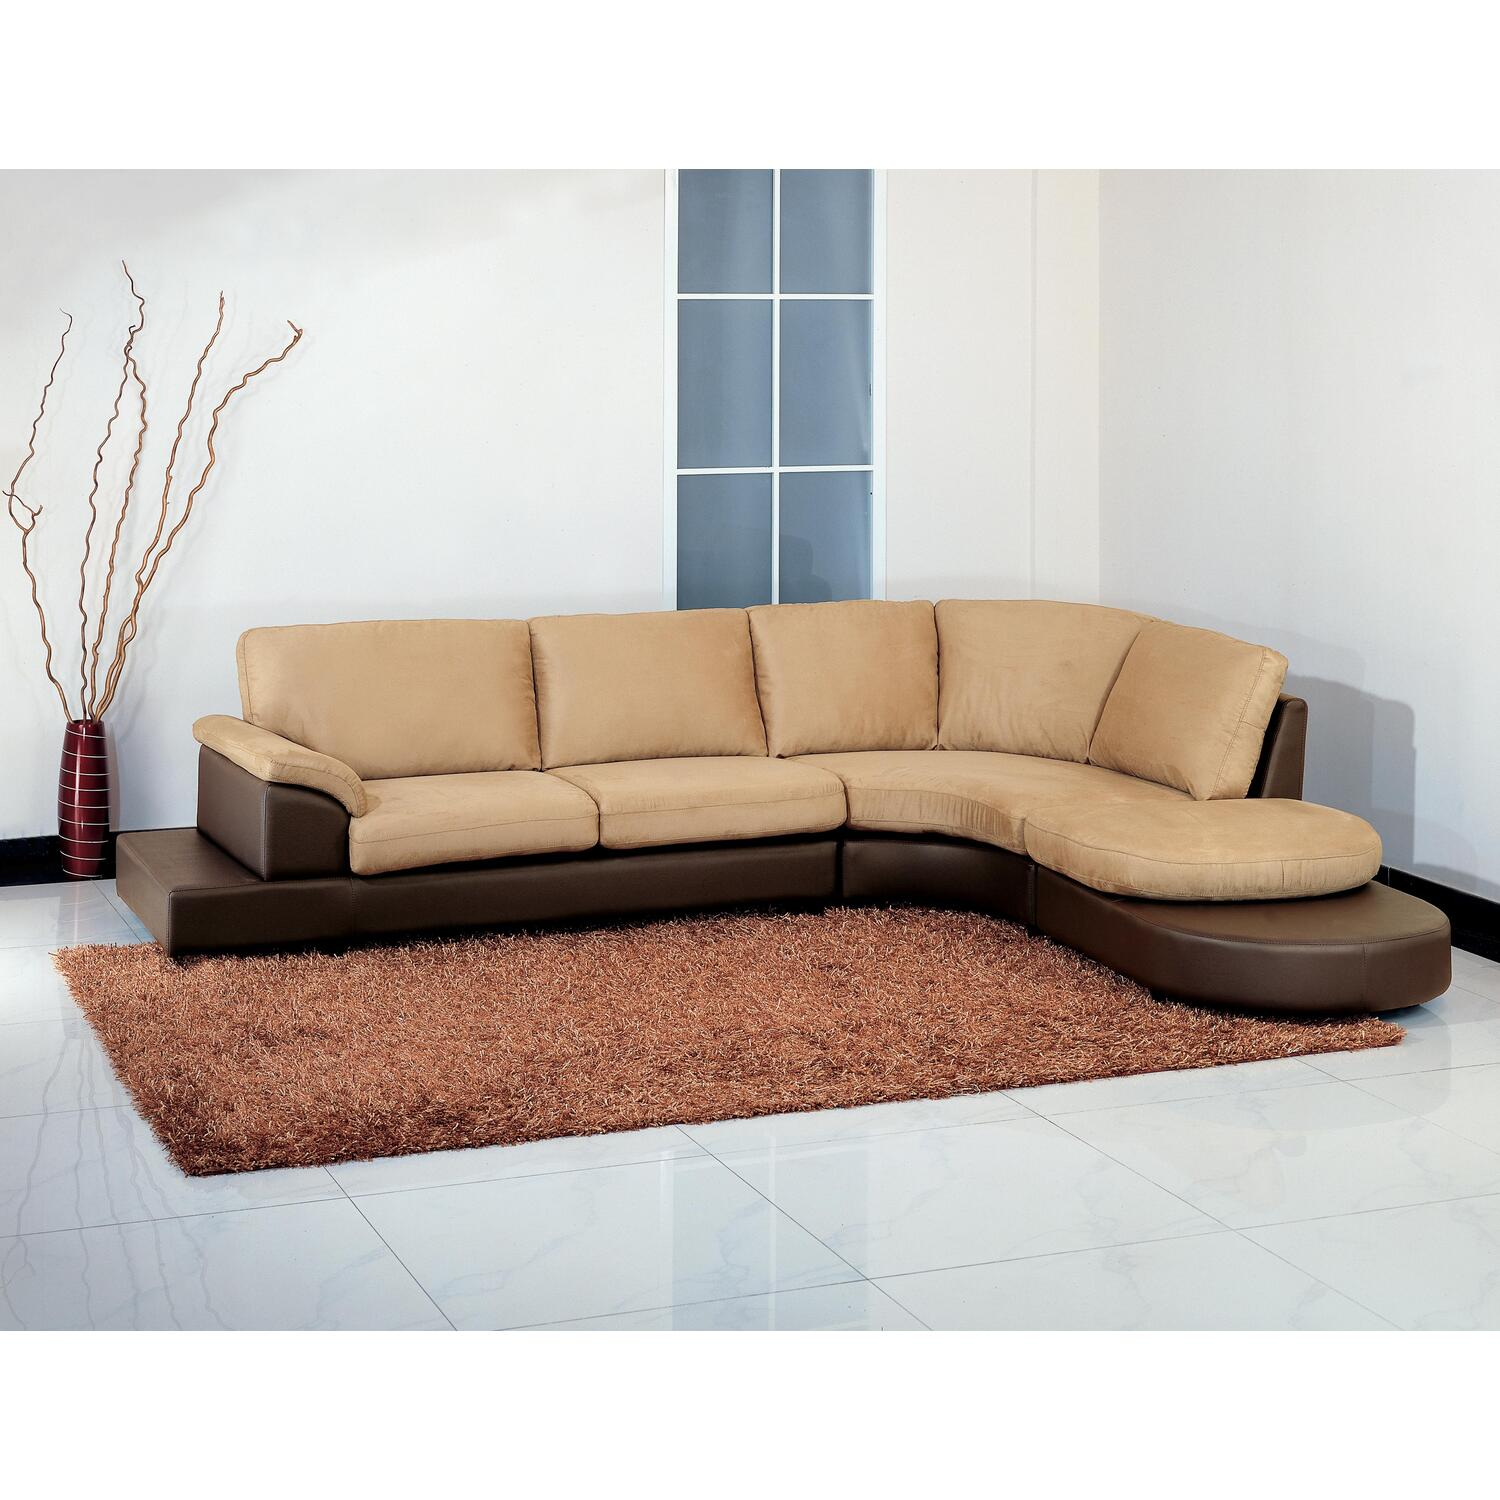 abbyson living mocha microsuede sectional sofa with ottoman by oj commerce abbl30 1. Black Bedroom Furniture Sets. Home Design Ideas